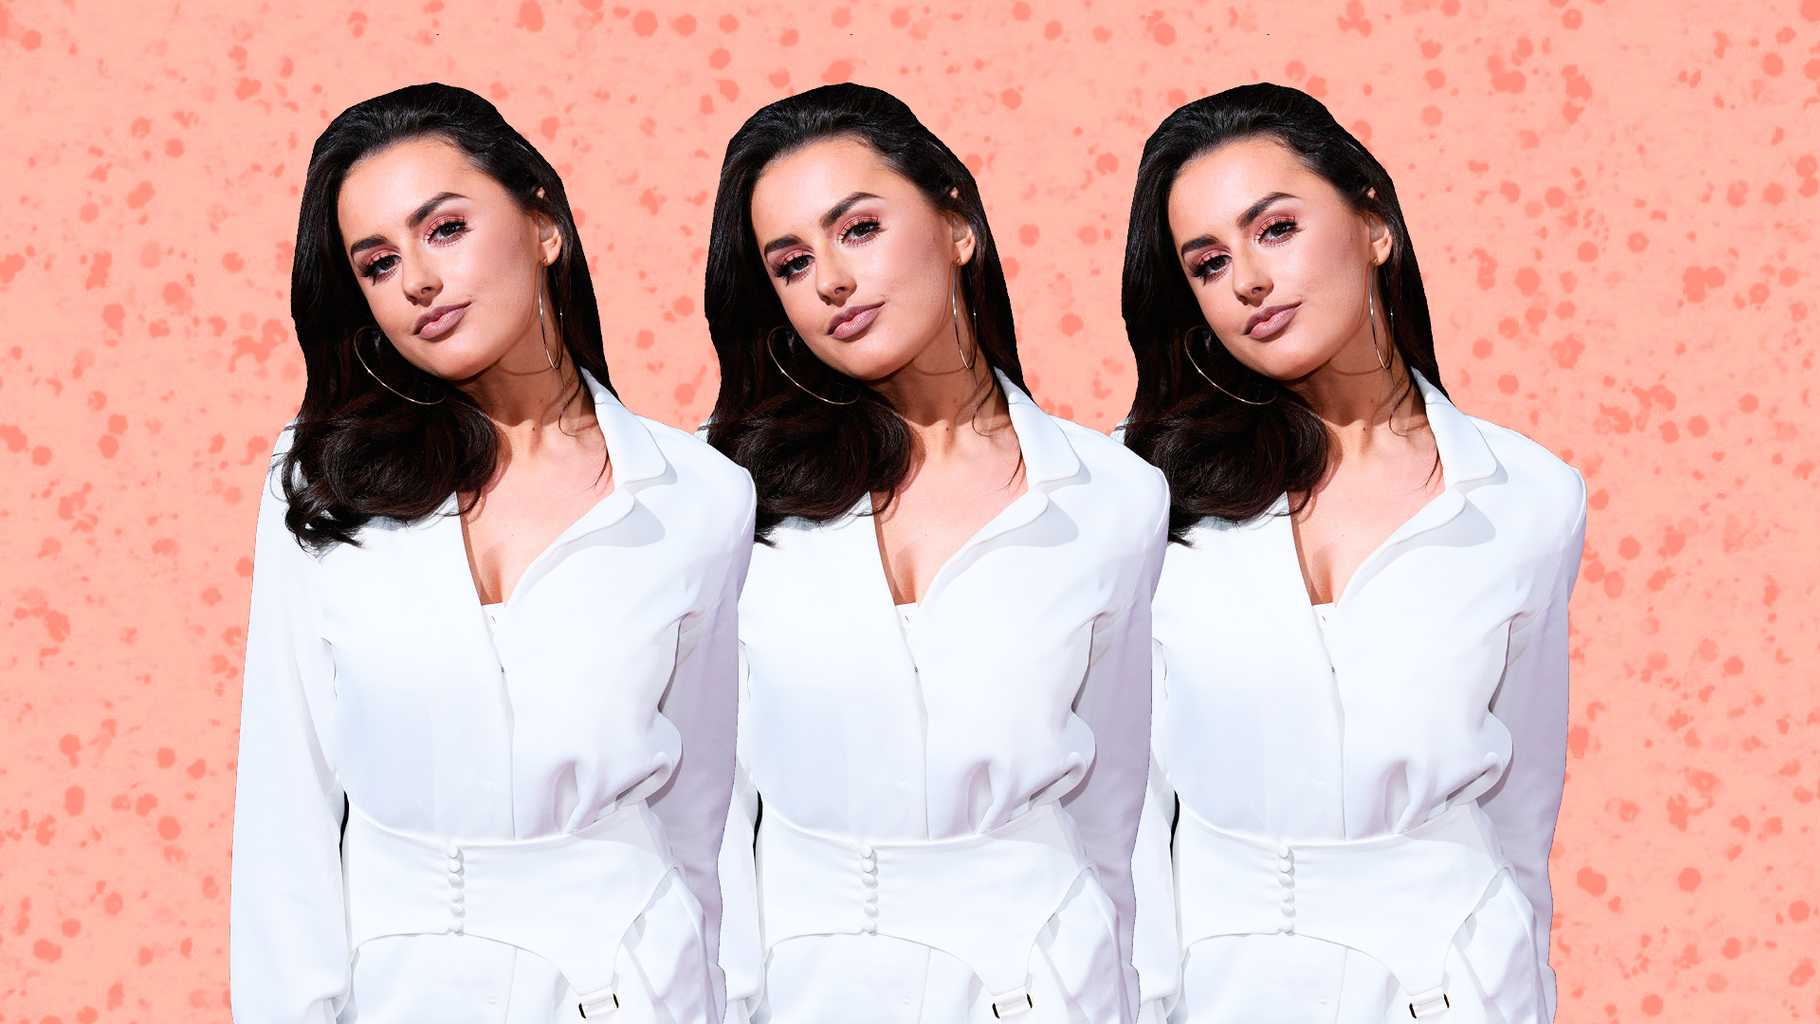 Love Islands Amber Davies Has New Rules For Casual Sex And Theyre Absolute Bullshit Grazia